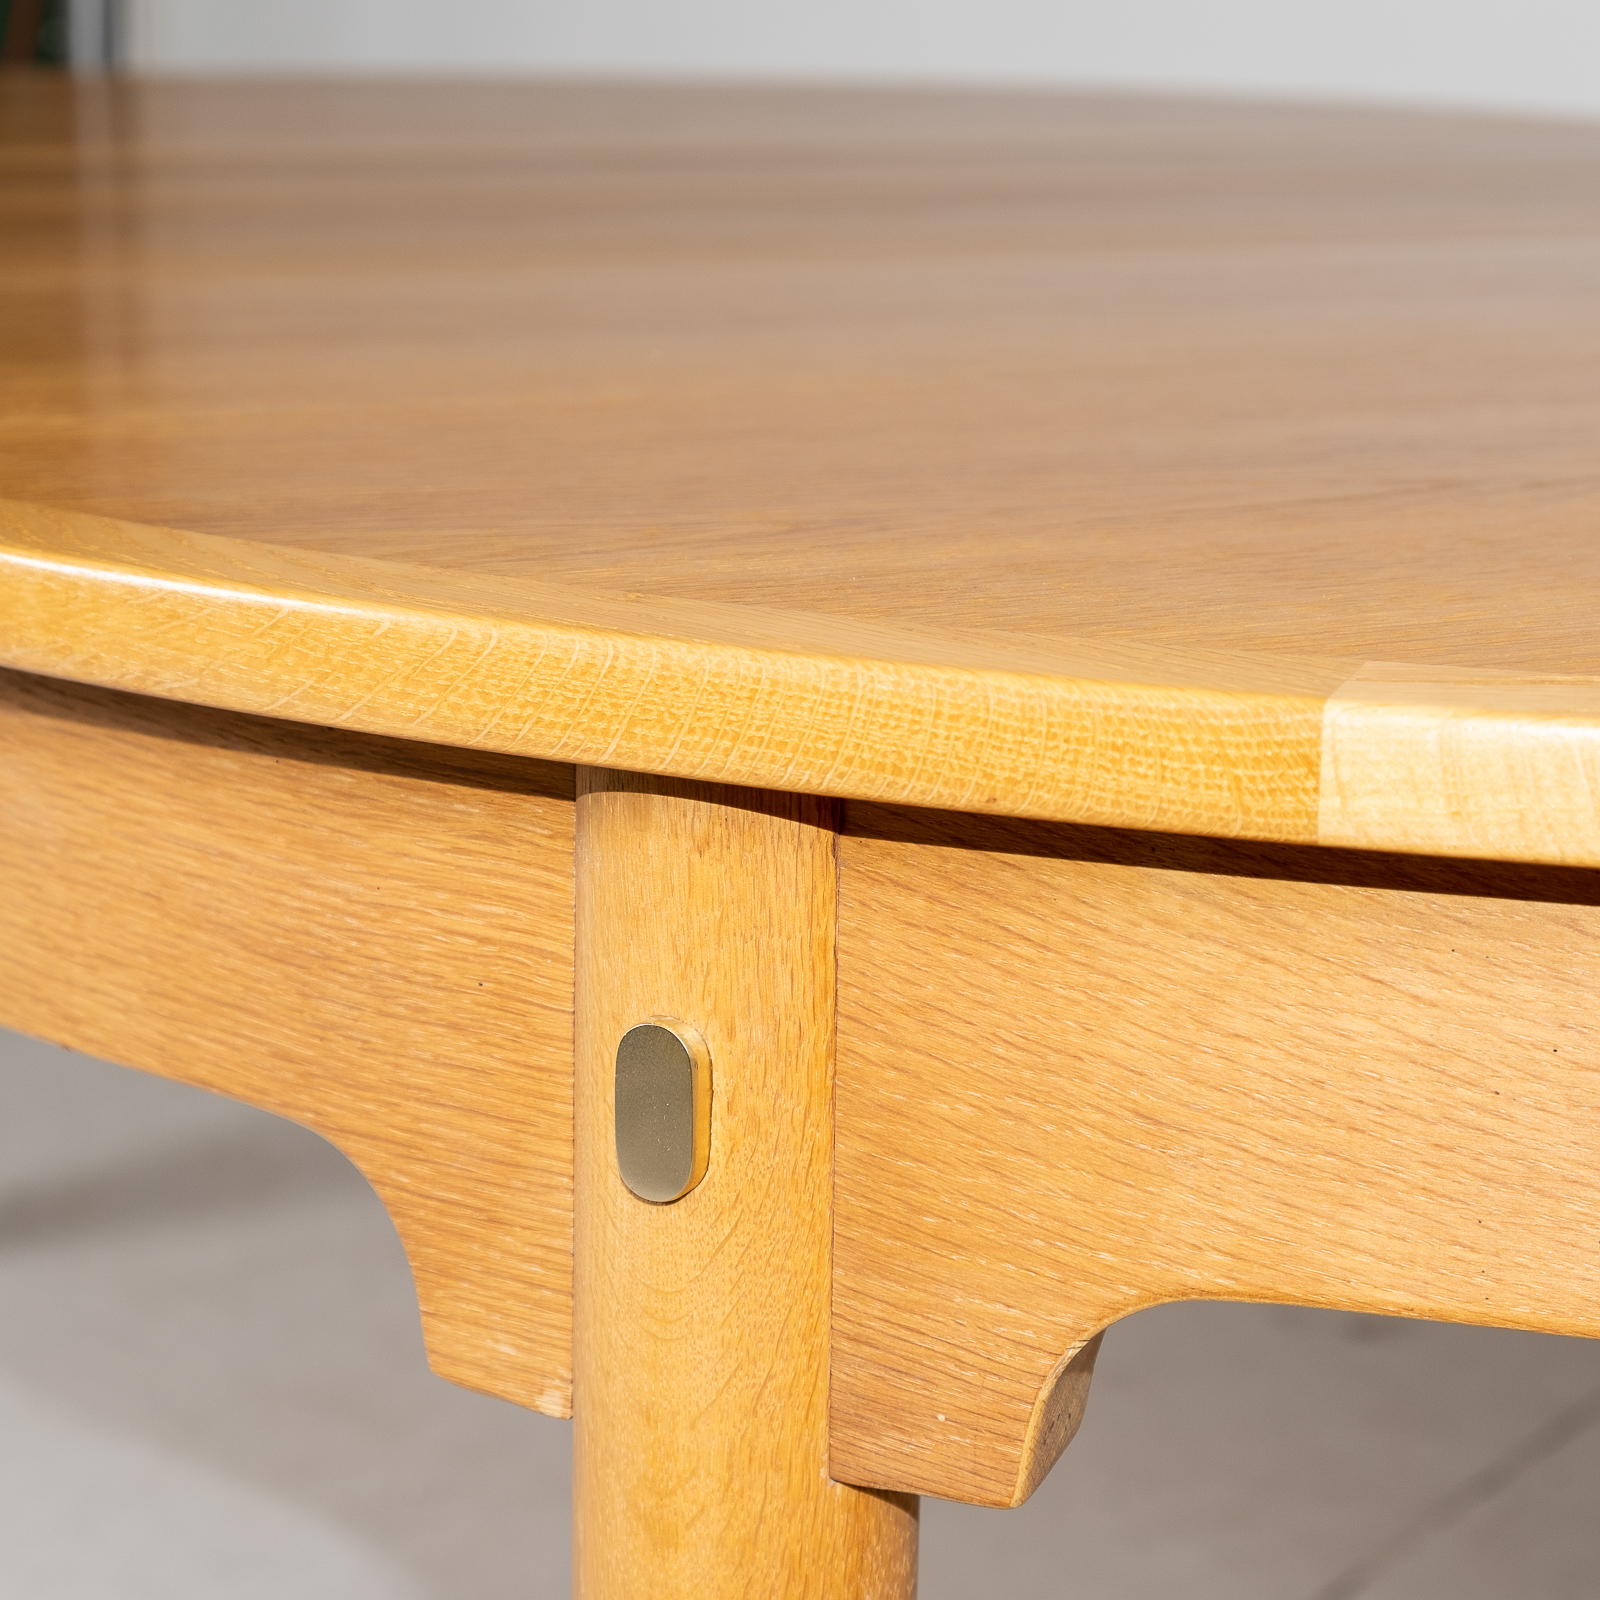 Oresund Round Dining Table By Borge Mogensen For Karl Andersson & Soner In Oak With One Extension Leaf, 1960s, Denmark3